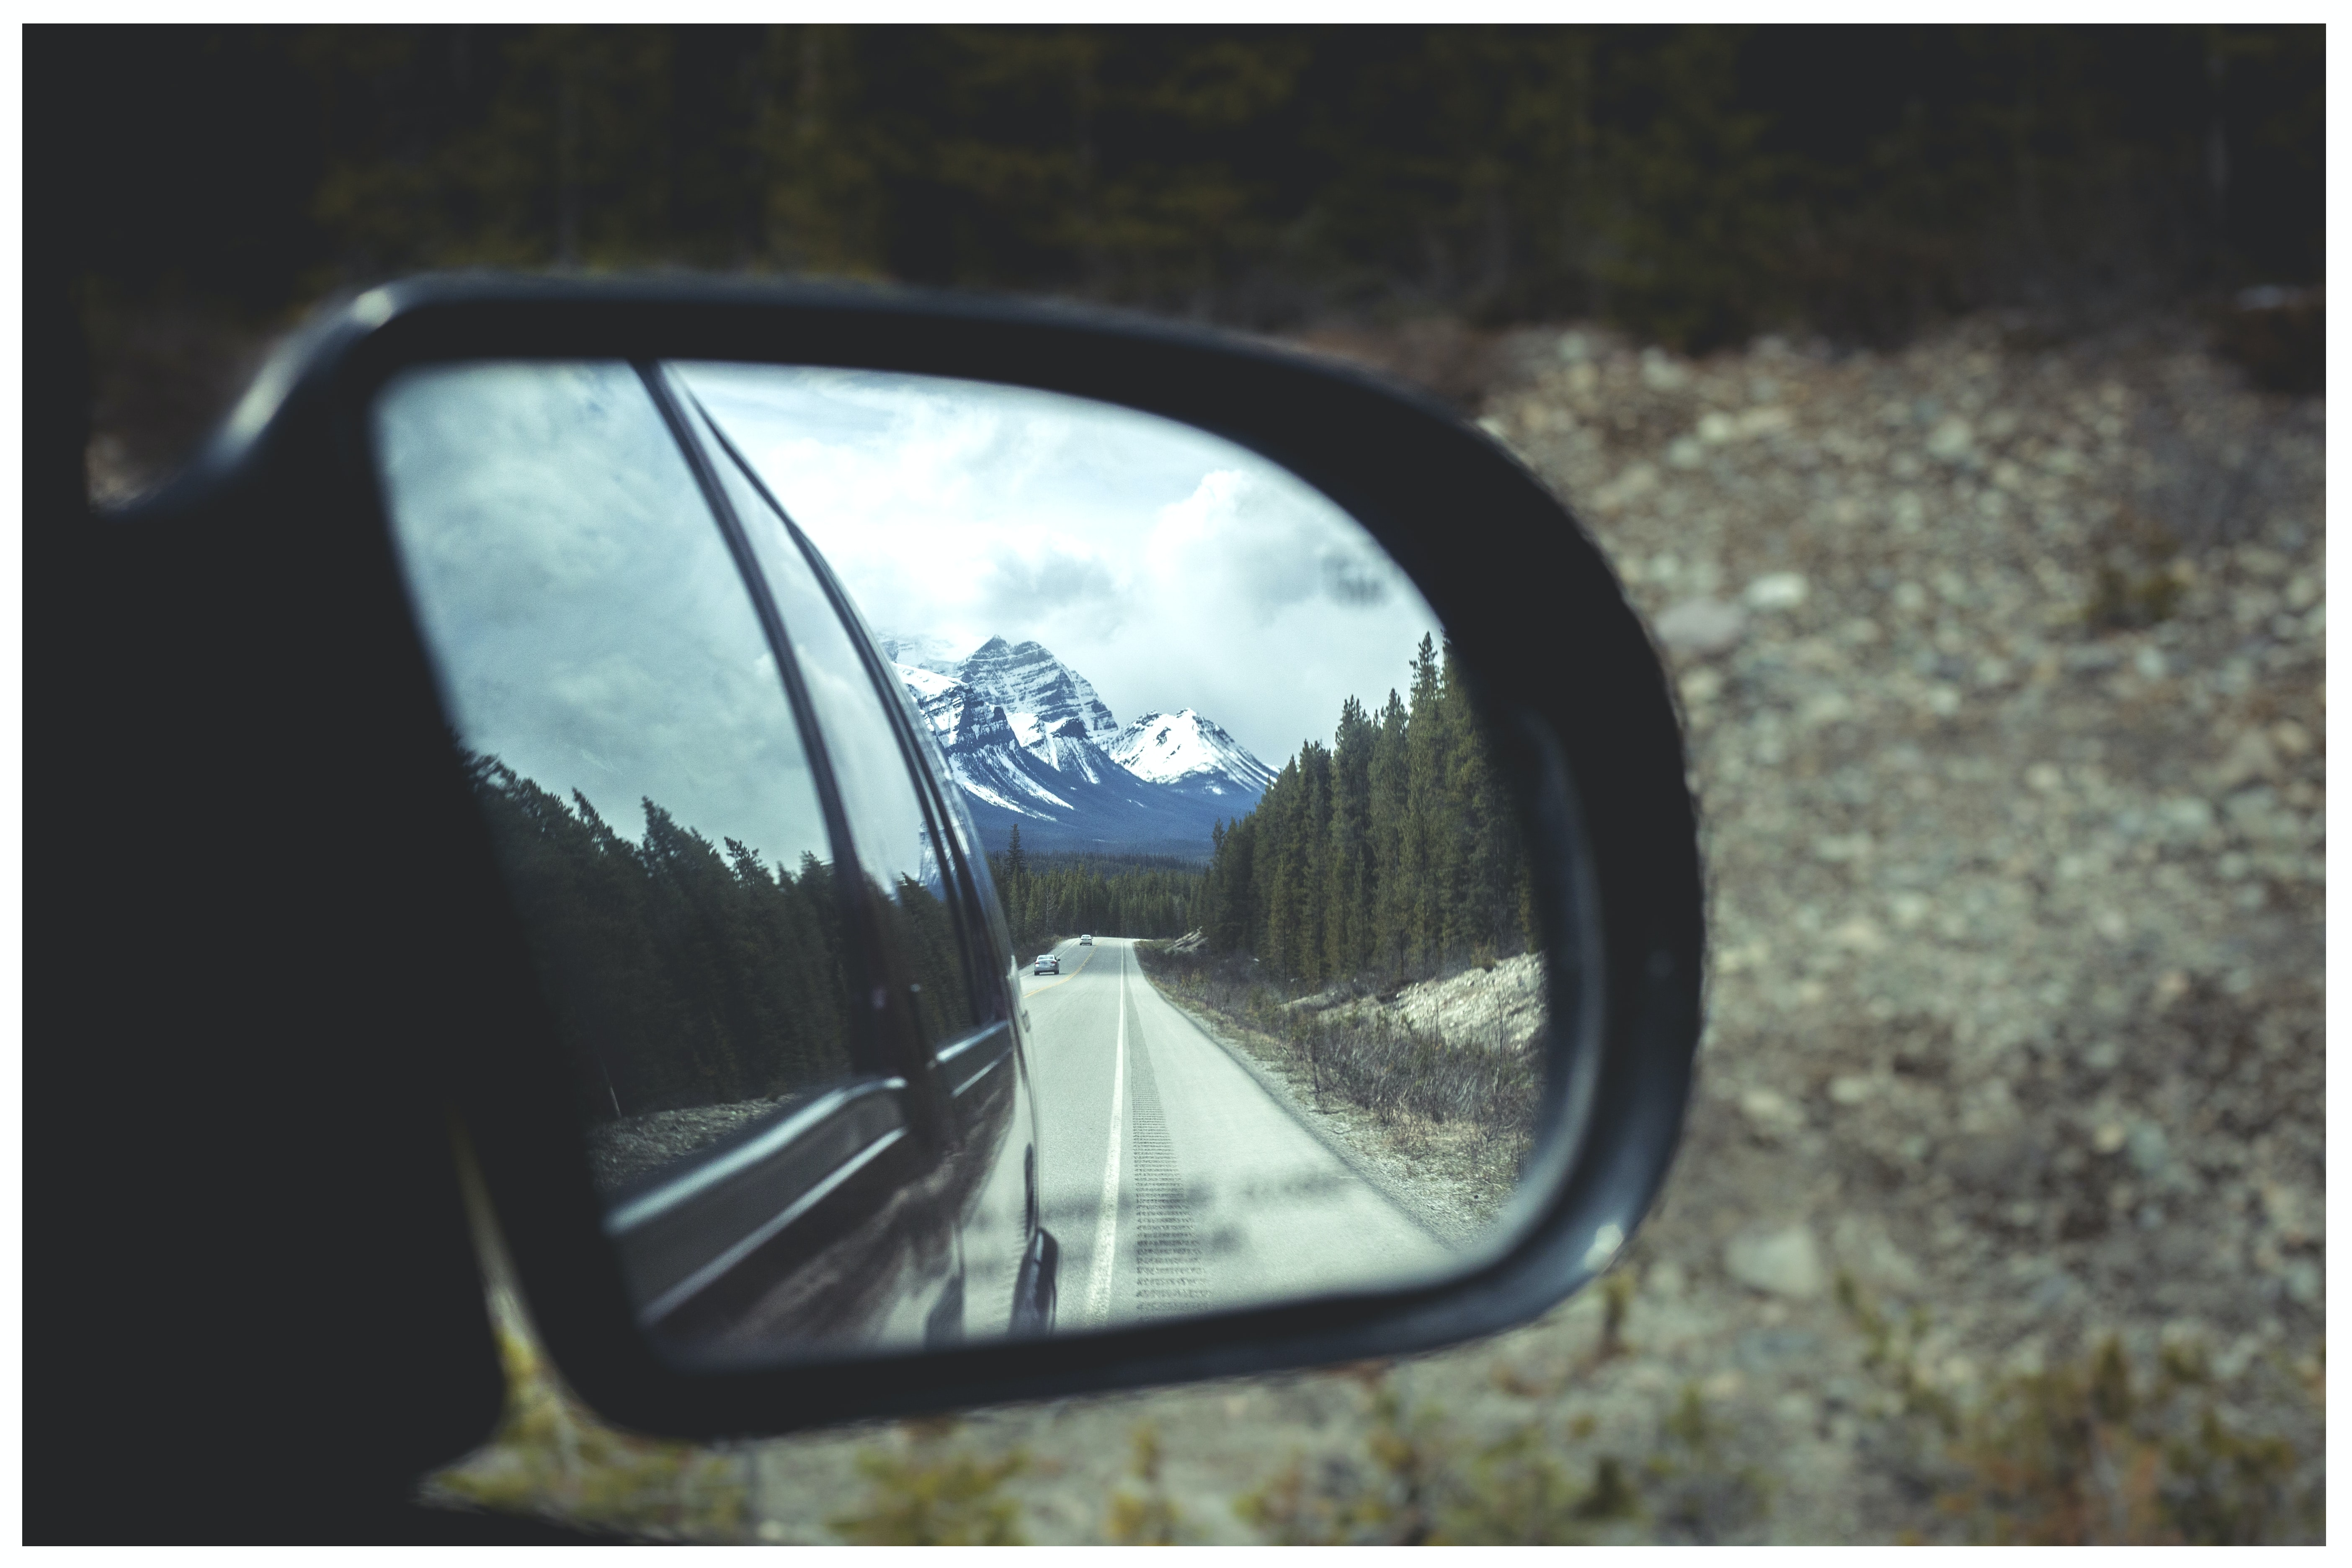 tilt shift photography of side mirror reflecting snow capped mountain